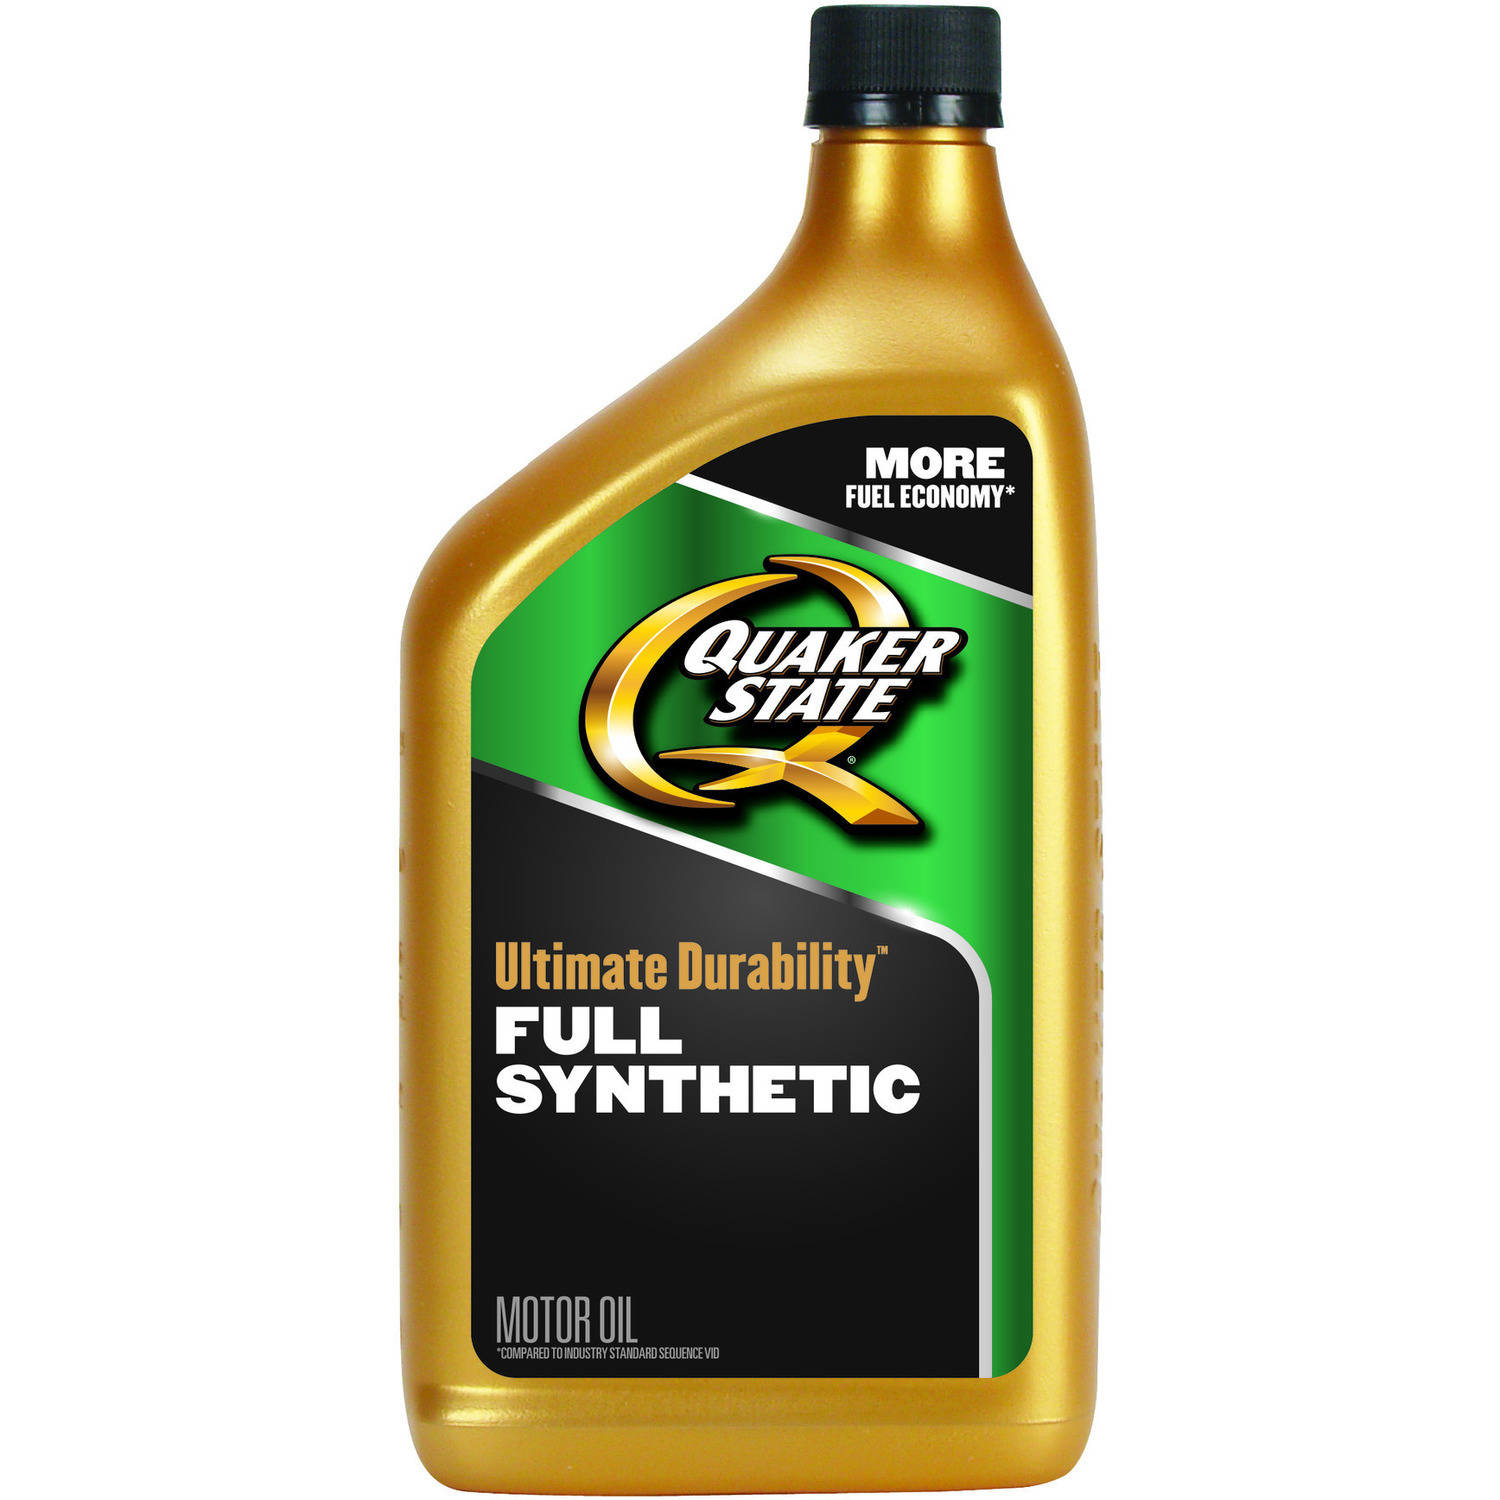 Quaker State Ultimate Durability Full Synthetic Motor Oil 5W-20 , 1 qt.